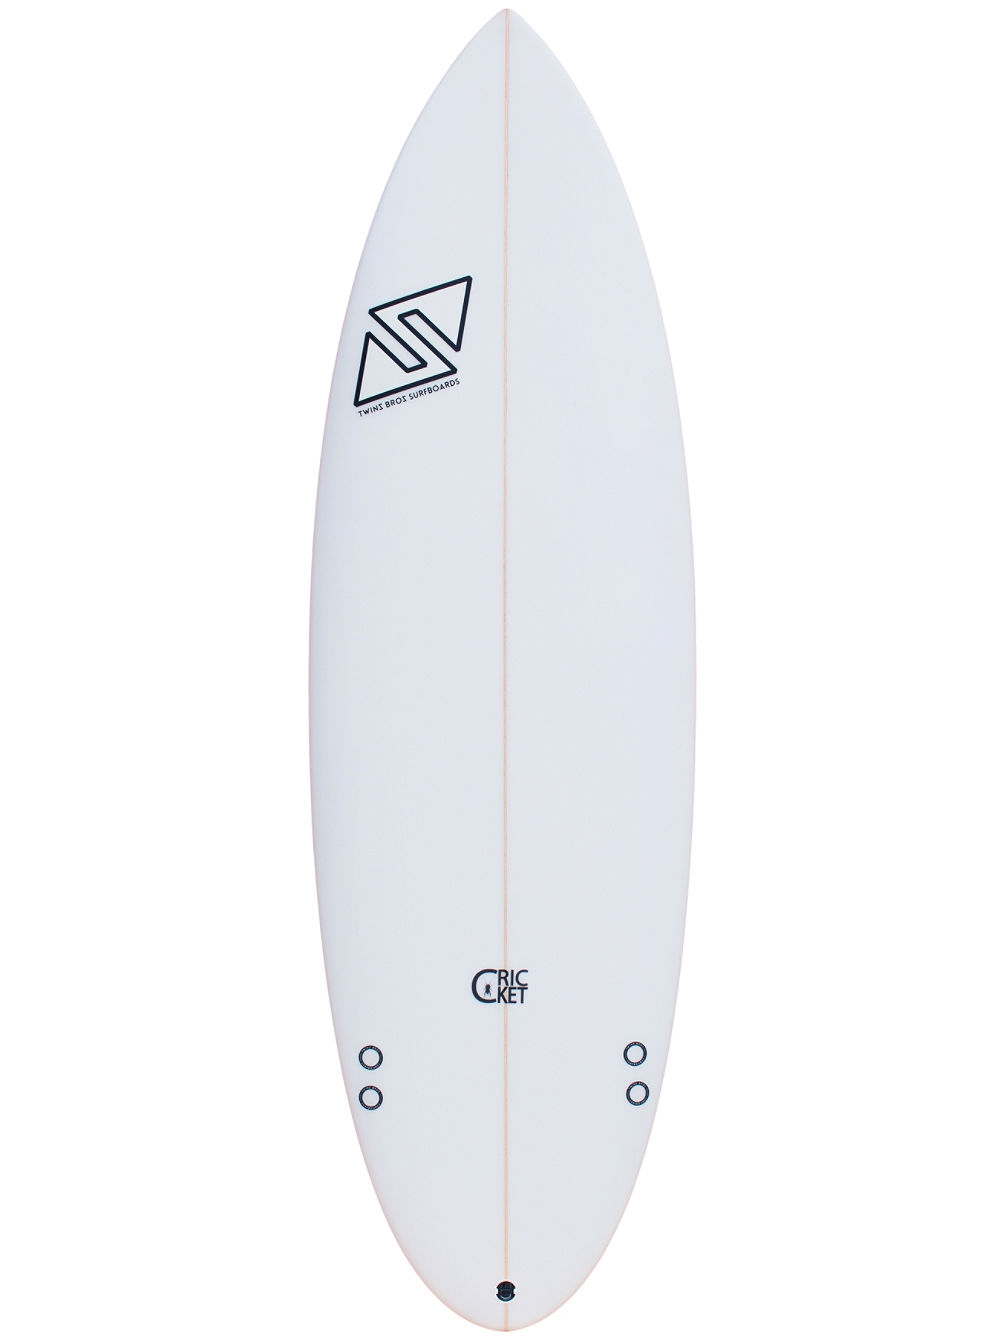 Cricket 5.10 Surfboard